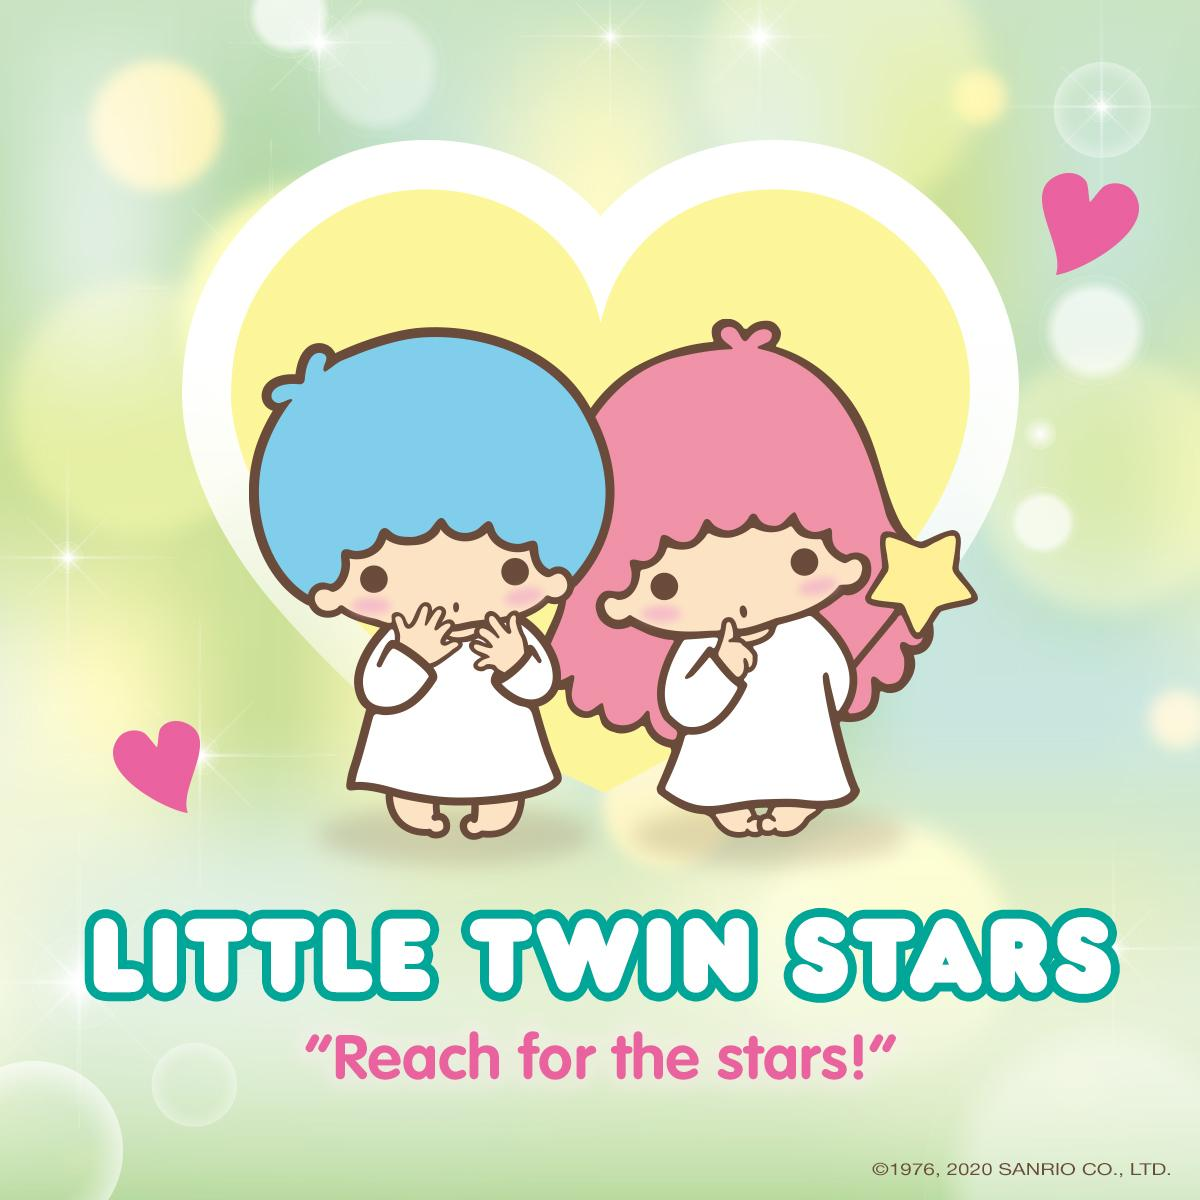 LAST CHANCE! There is no limit when reaching for the stars Kiki and Lala are dreaming for you! Vote for #LittleTwinStars in the 35th Annual #SanrioCharacterRanking today: https://bit.ly/2LTY4rd pic.twitter.com/Odm1G42Ds3